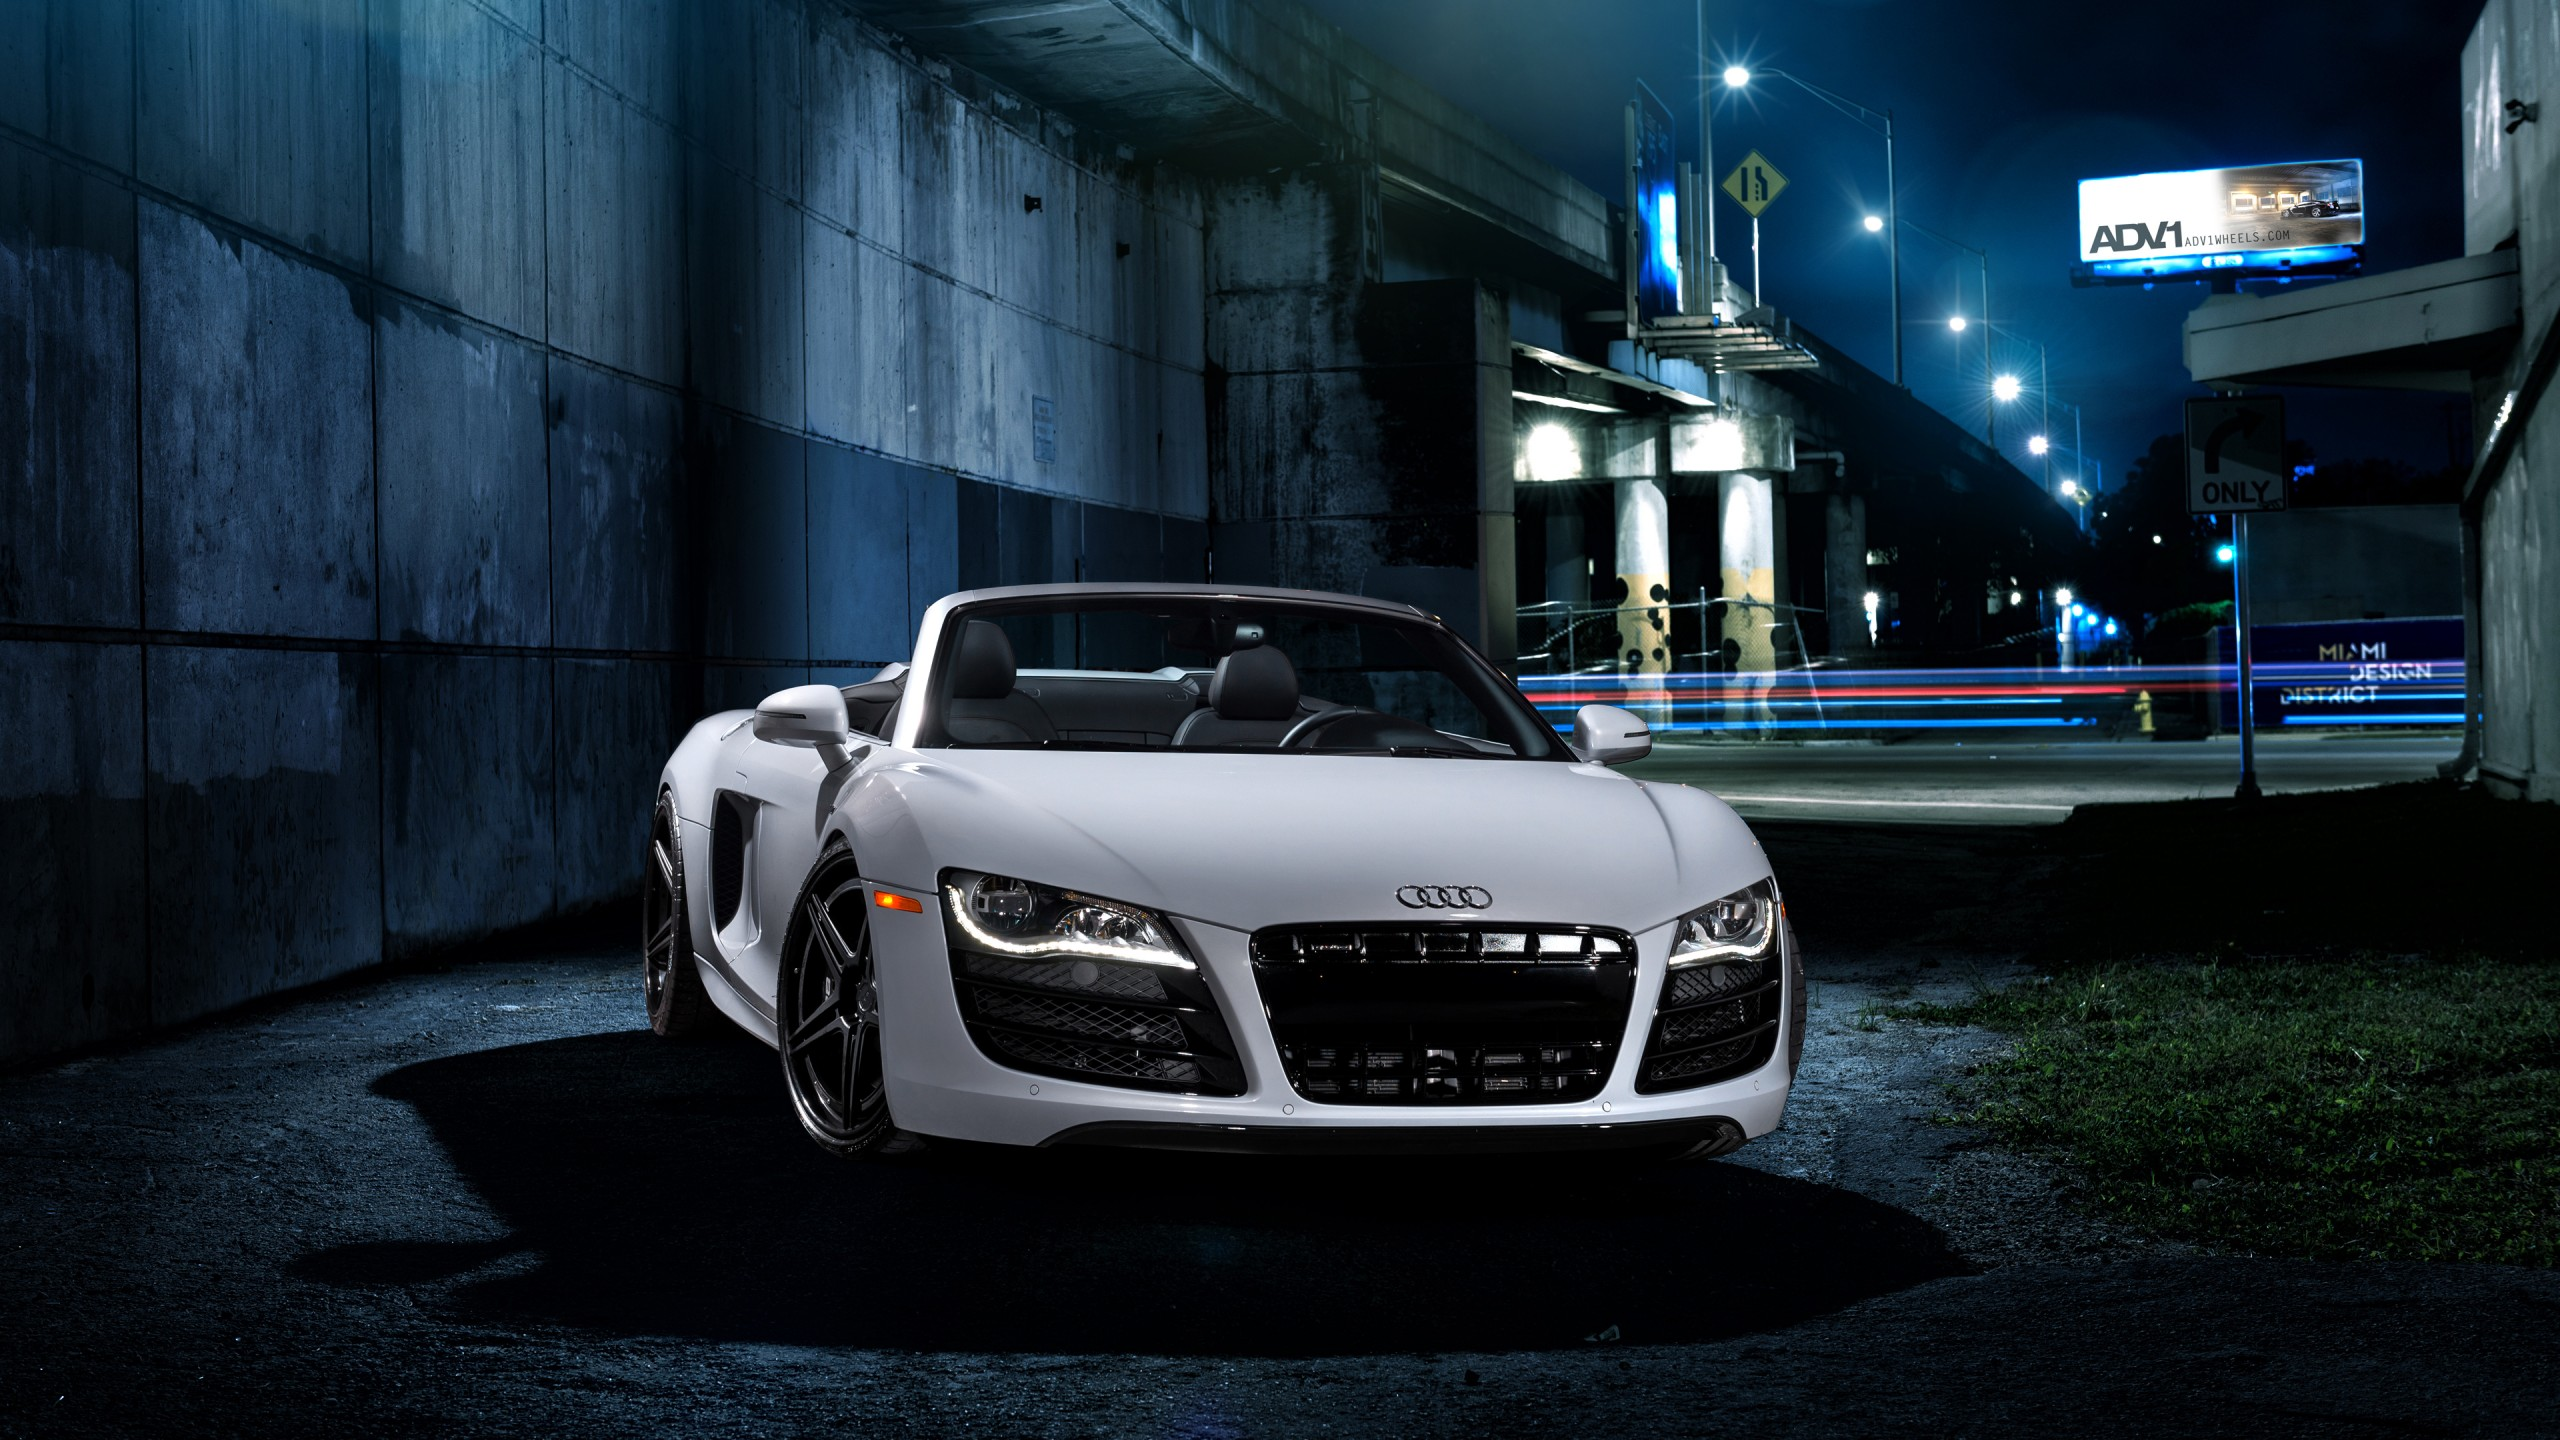 Adv1 Audi R8 V10 Wallpaper Hd Car Wallpapers Id 5508